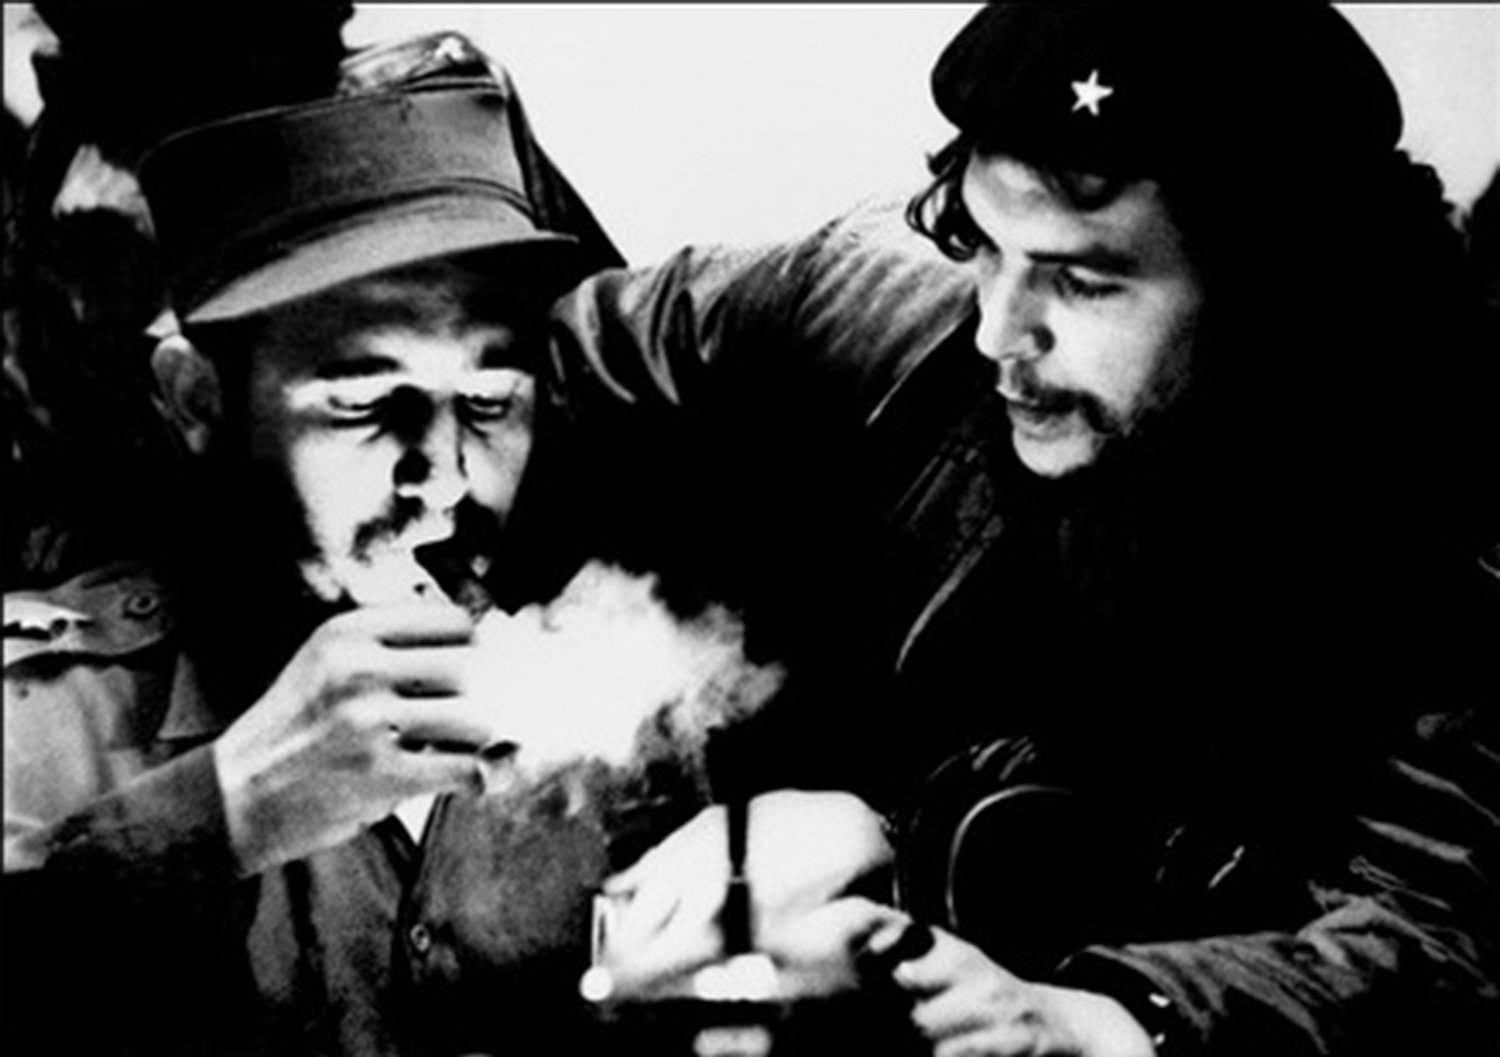 (FILES) This file photo taken in the 1960s shows then Cuban Prime Minister Fidel Castro (L) lighting a cigar while listens Argentine Ernesto Che Guevara